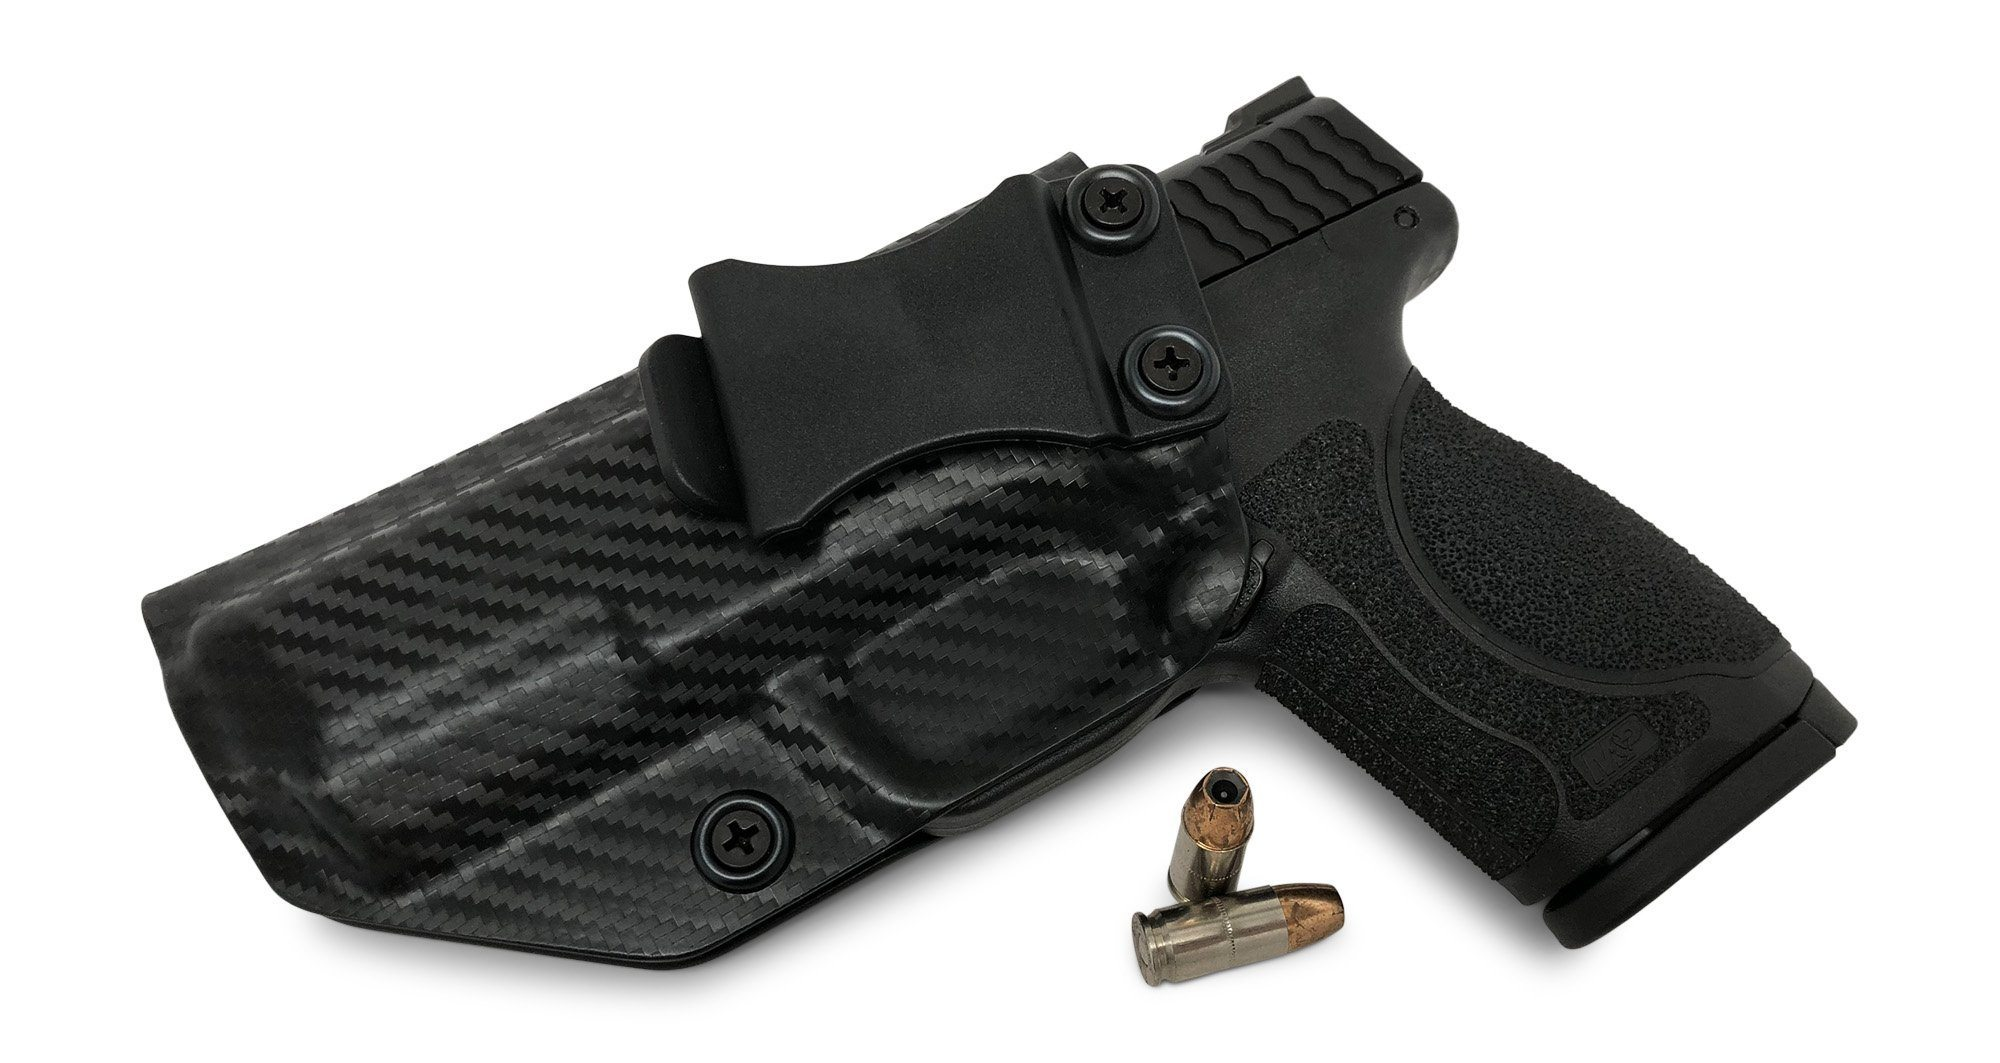 iwb-kydex-holster-smith-wesson-m-p-m2-0-9-40-compact-4-0-full-size-4-25-iwb-kydex-holster-5